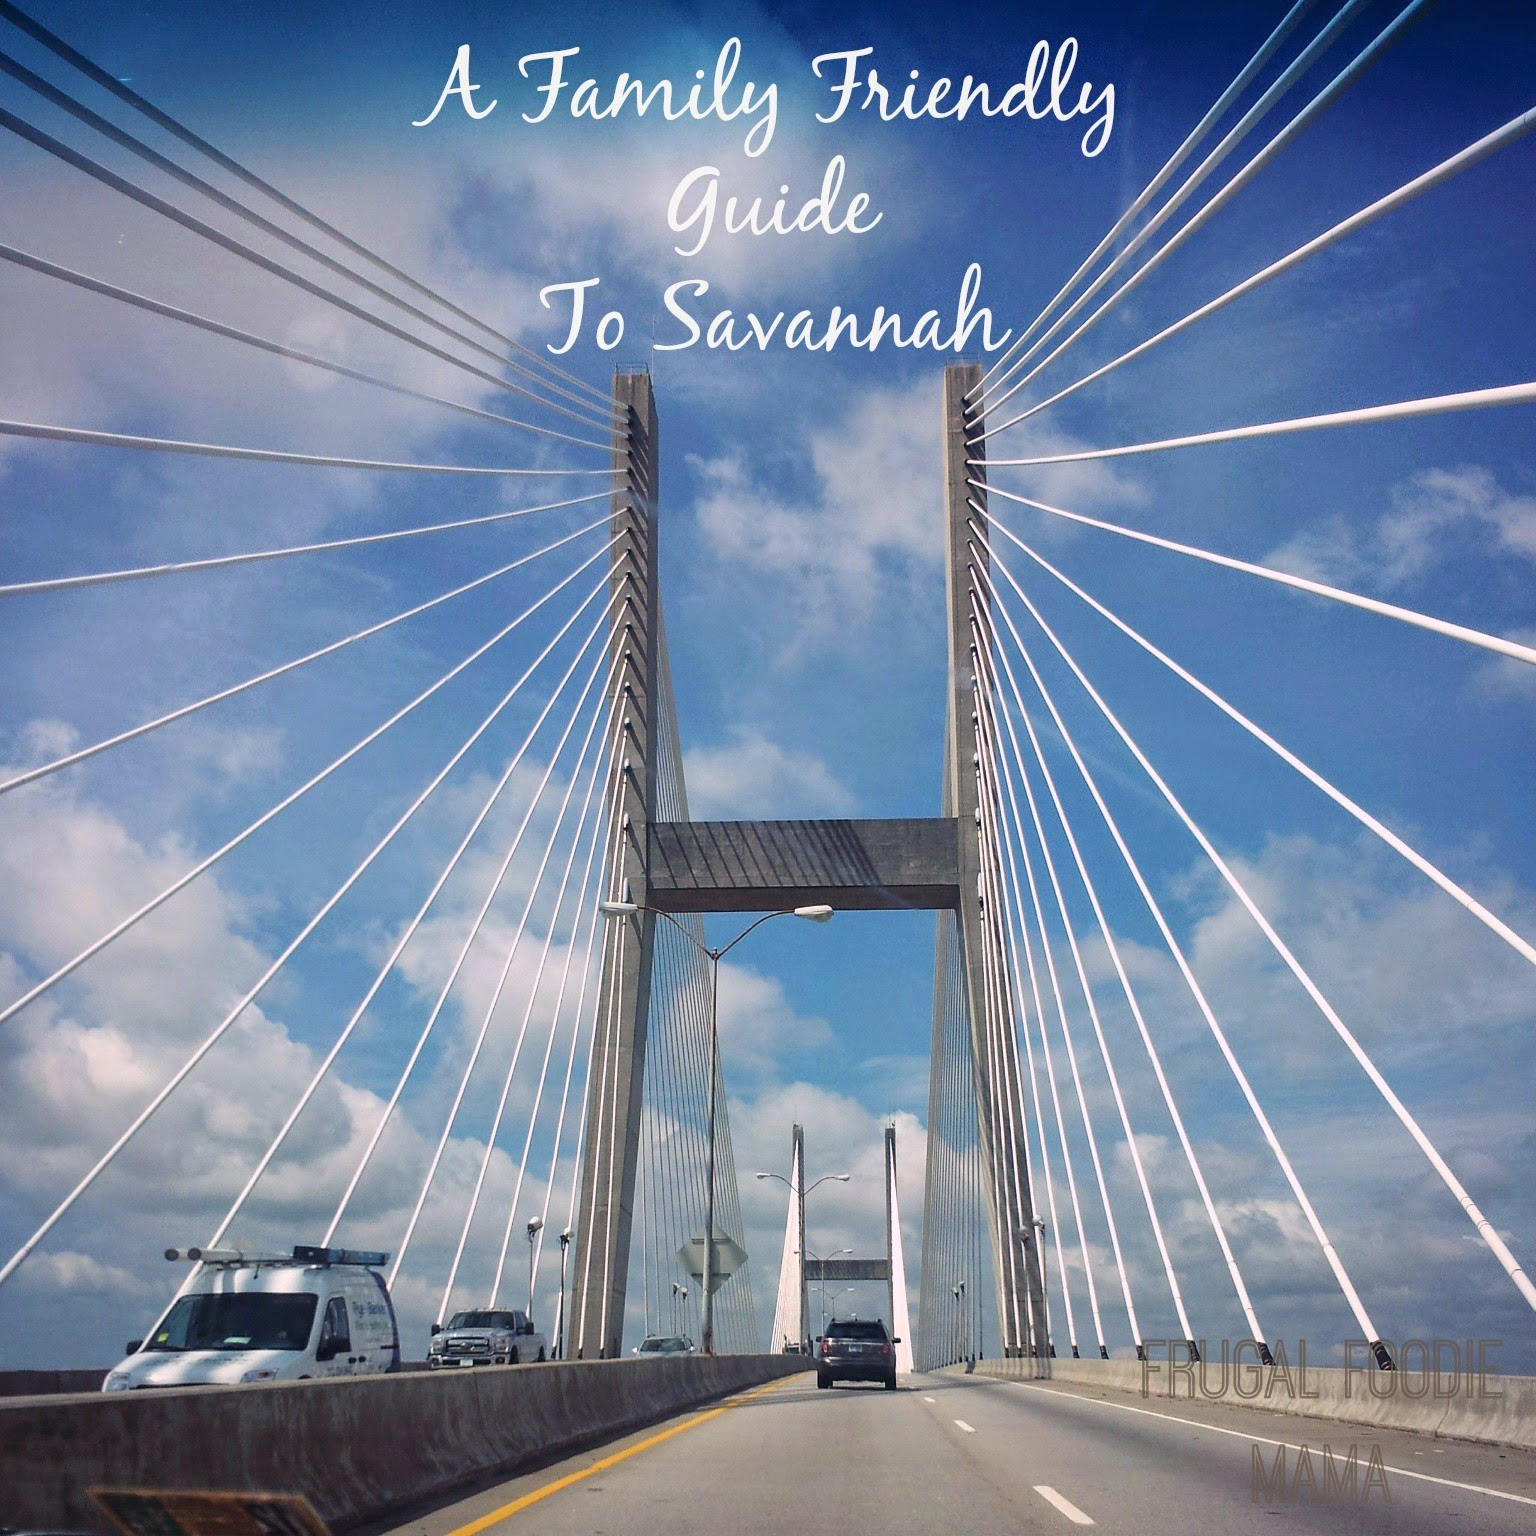 If you have been pondering a family trip to the charming hostess city of the South, but are not sure if it is really the spot to pack up the kiddos to visit then you definitely need to check out my Family Friendly Guide to Savannah, Georgia.